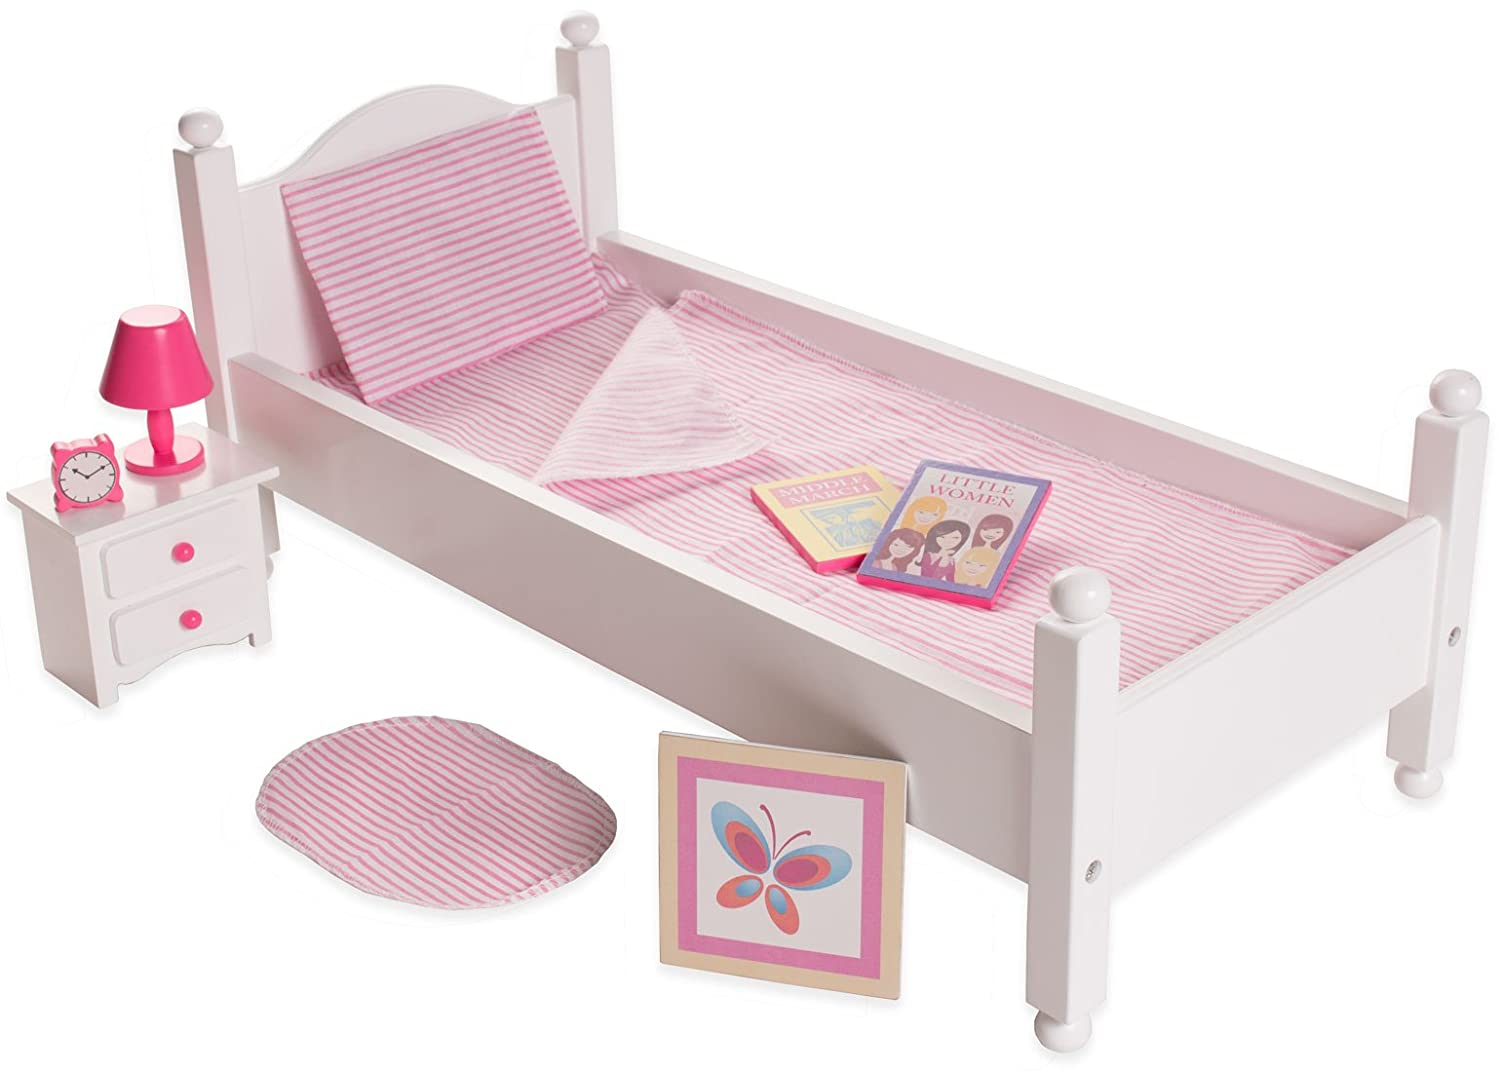 Playtime by Eimmie Bedroom Set - Doll Bed with Doll Accessories - Bed Furniture Set for 18 Inch Dolls